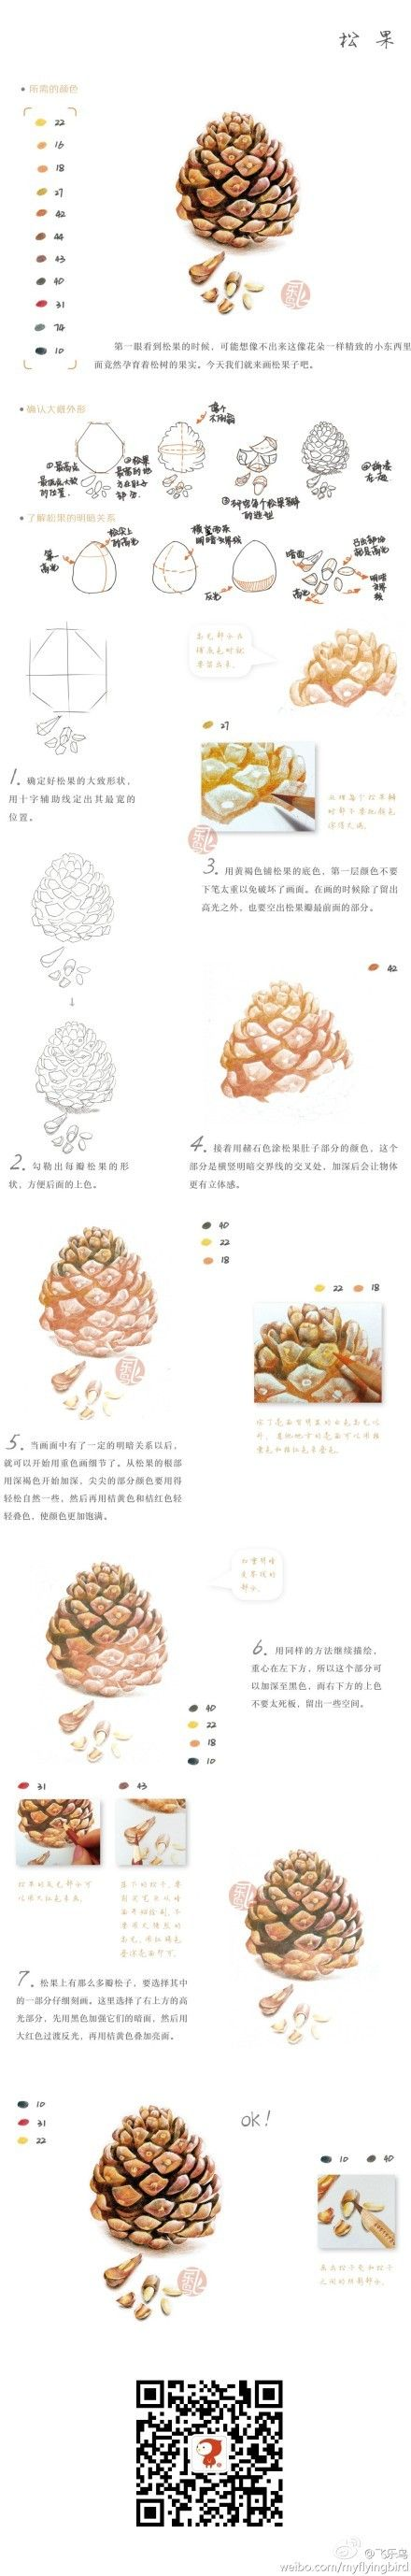 tutorial to draw the most realistic shading for a pinecone.